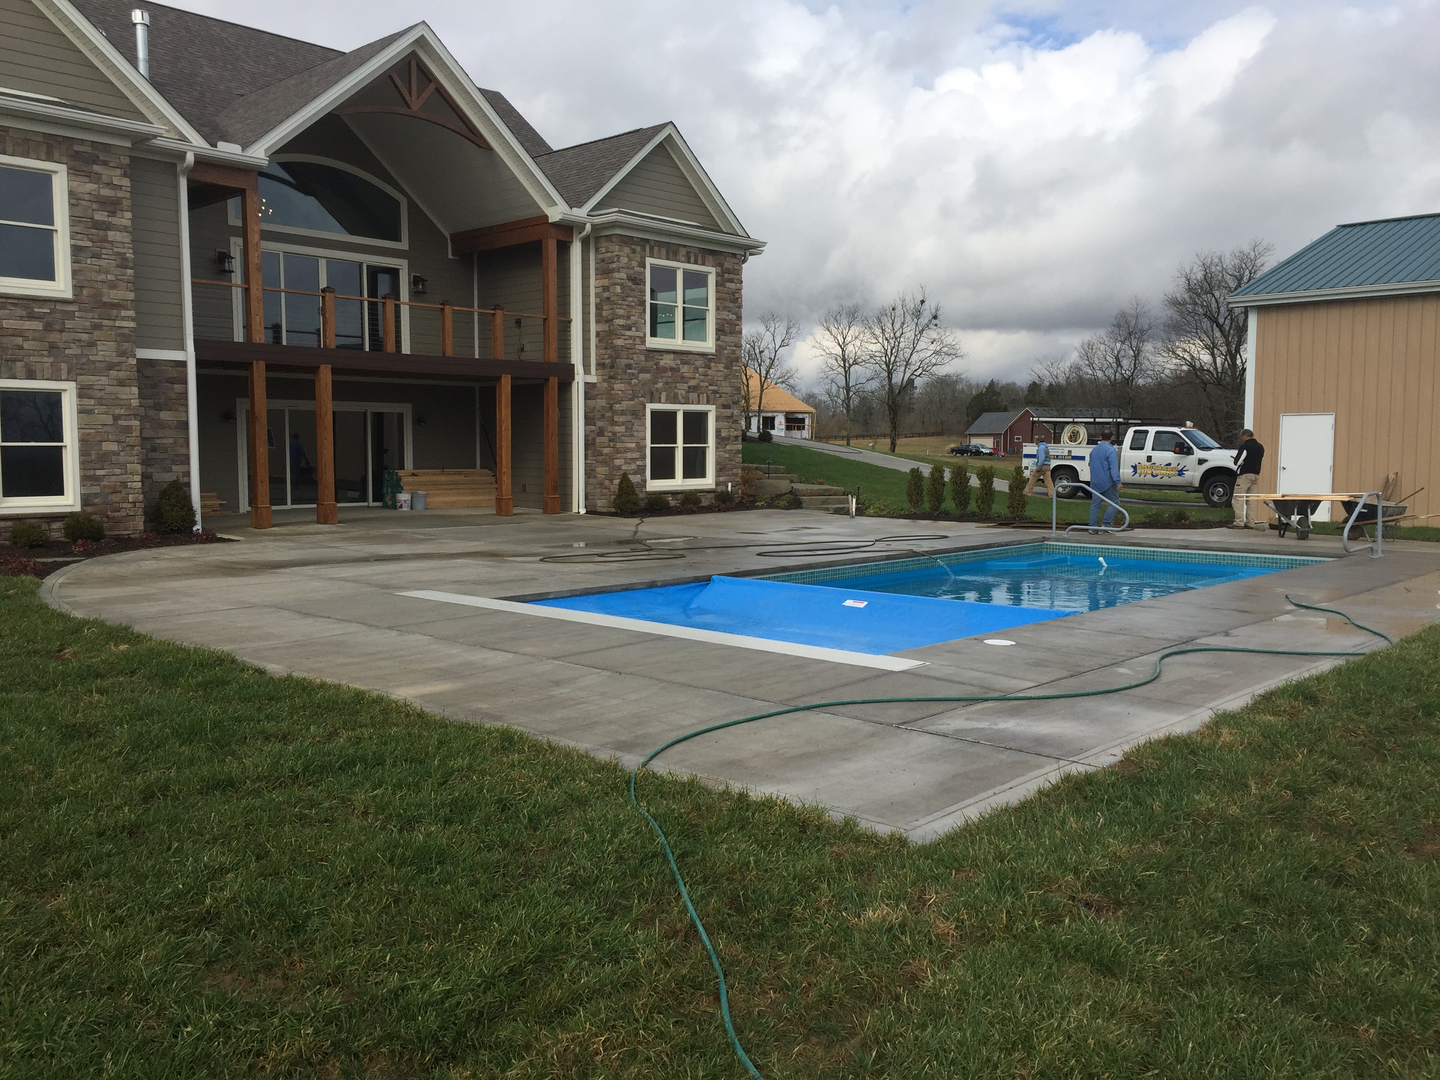 Backyard fun pools inc coupons near me in nicholasville for Pool showrooms near me